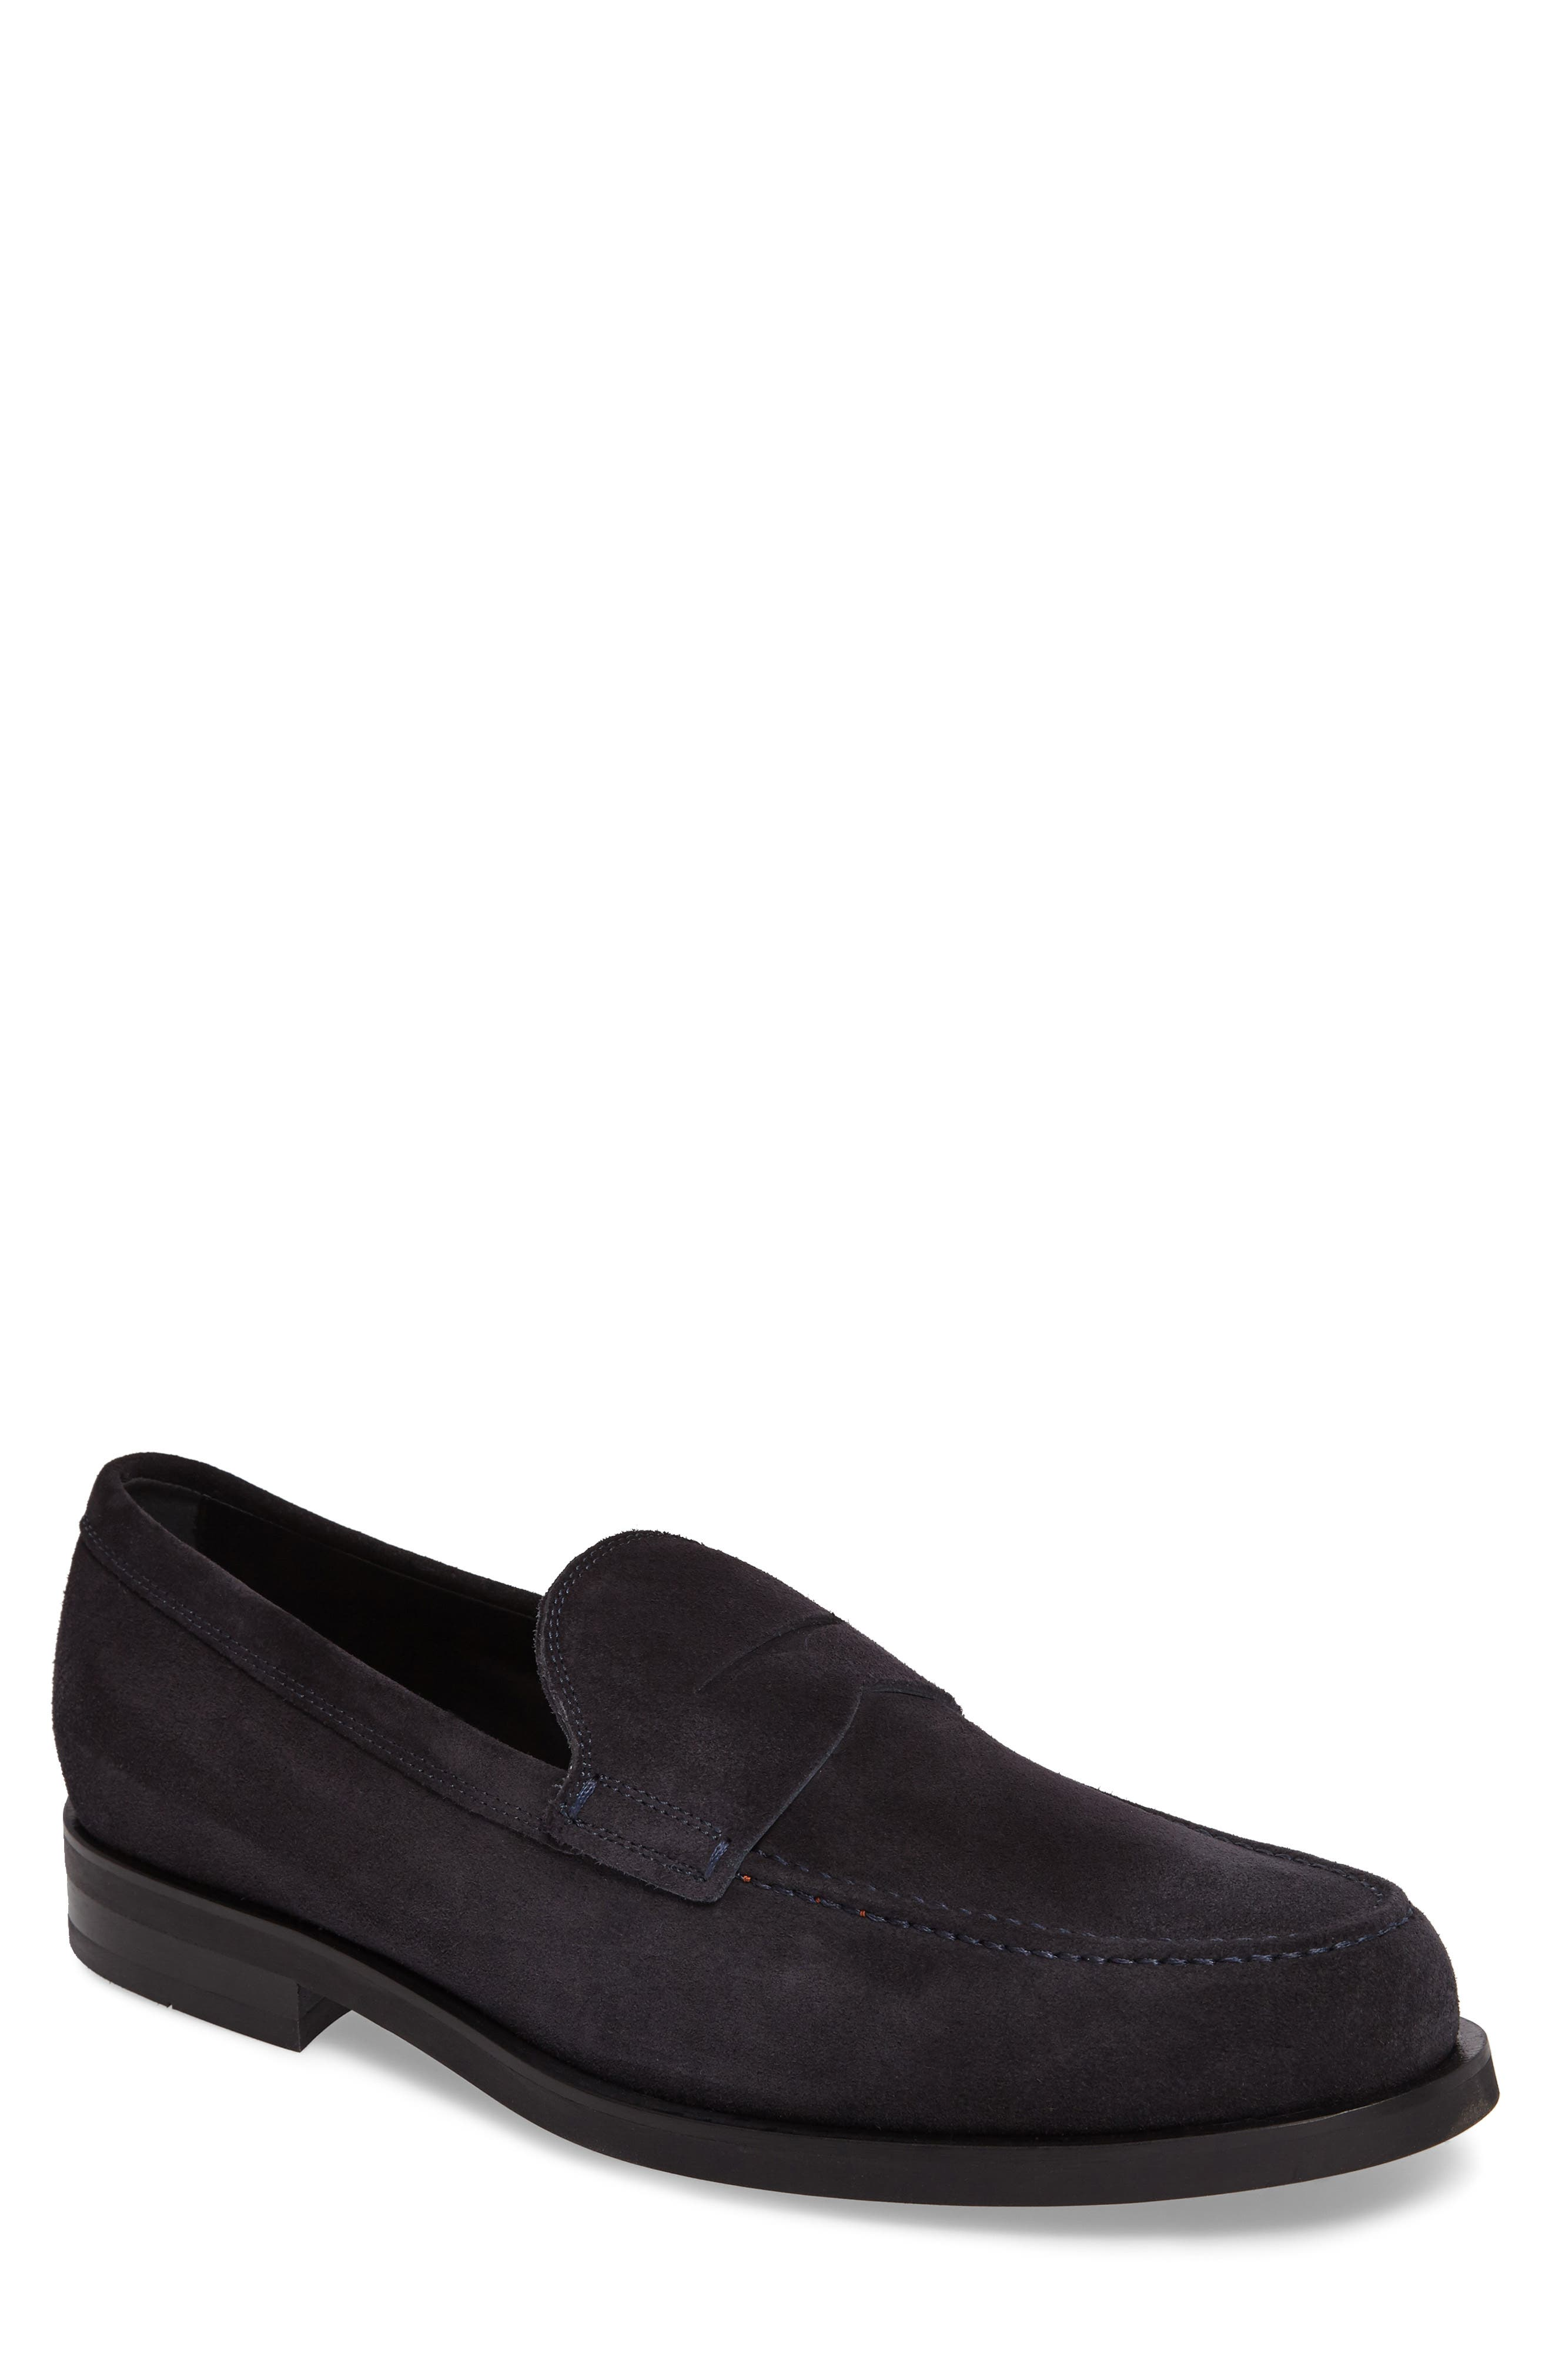 Penny Loafer,                         Main,                         color, Navy Suede